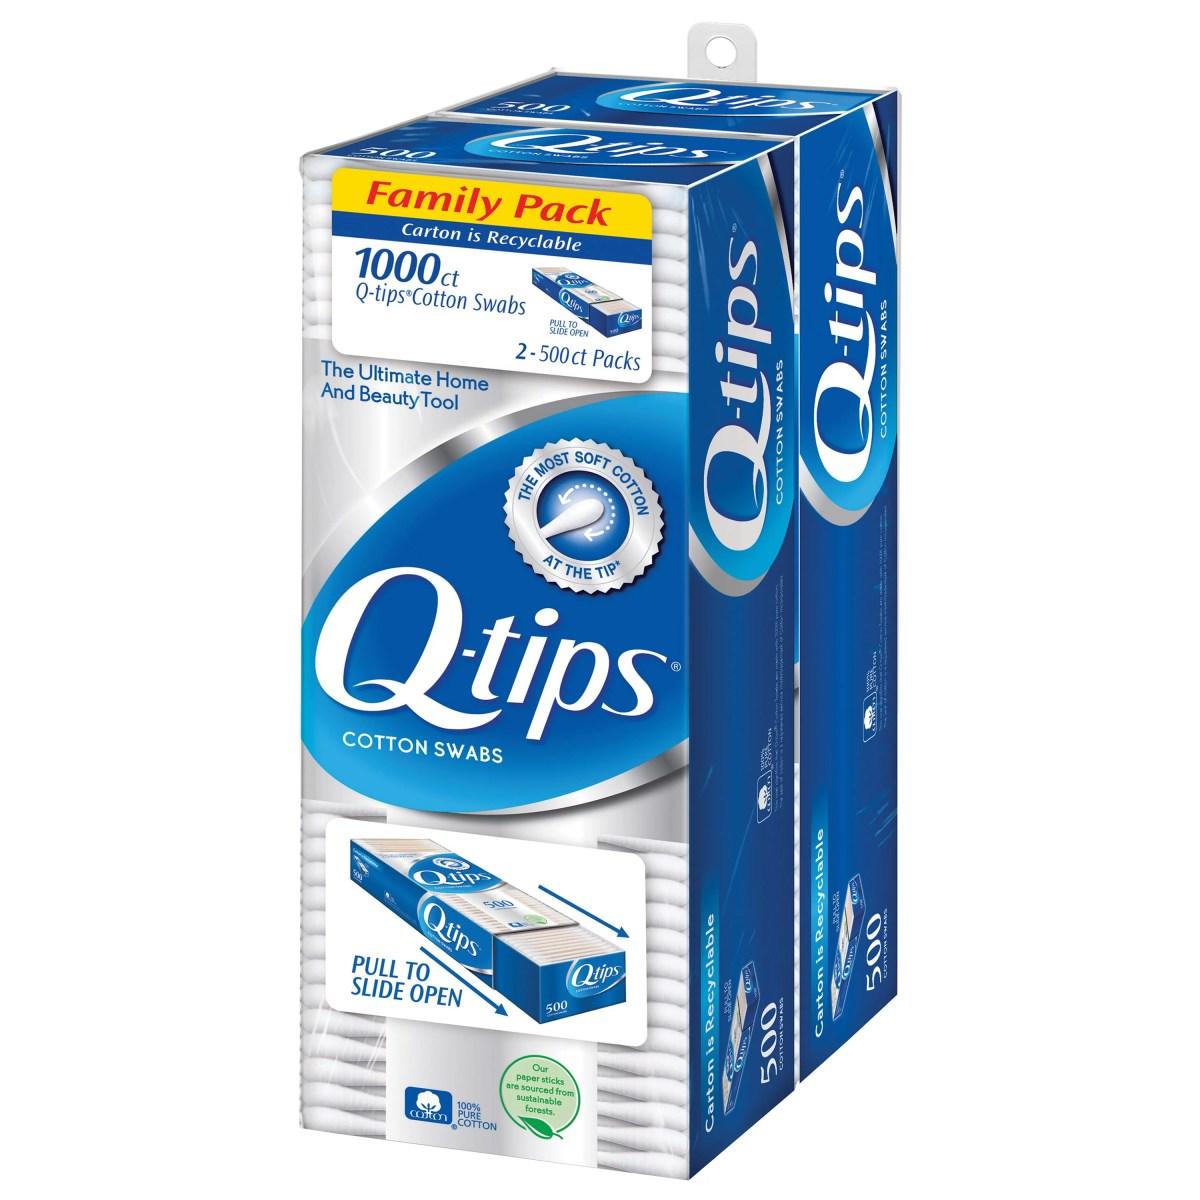 Q-tips Original Cotton Swabs 1000 count